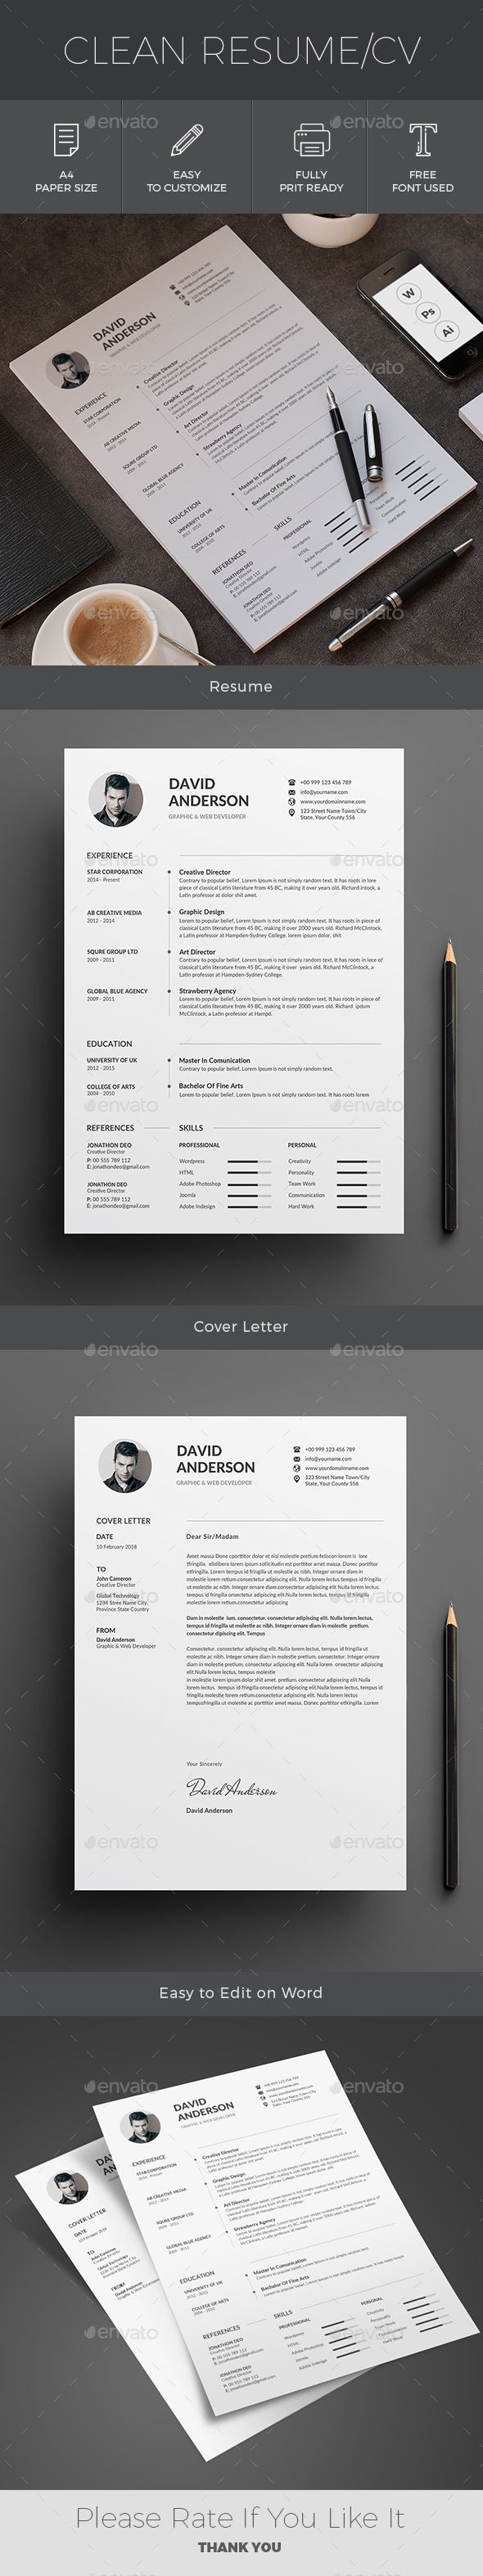 Best Resume Images On   Resume Templates Page Layout